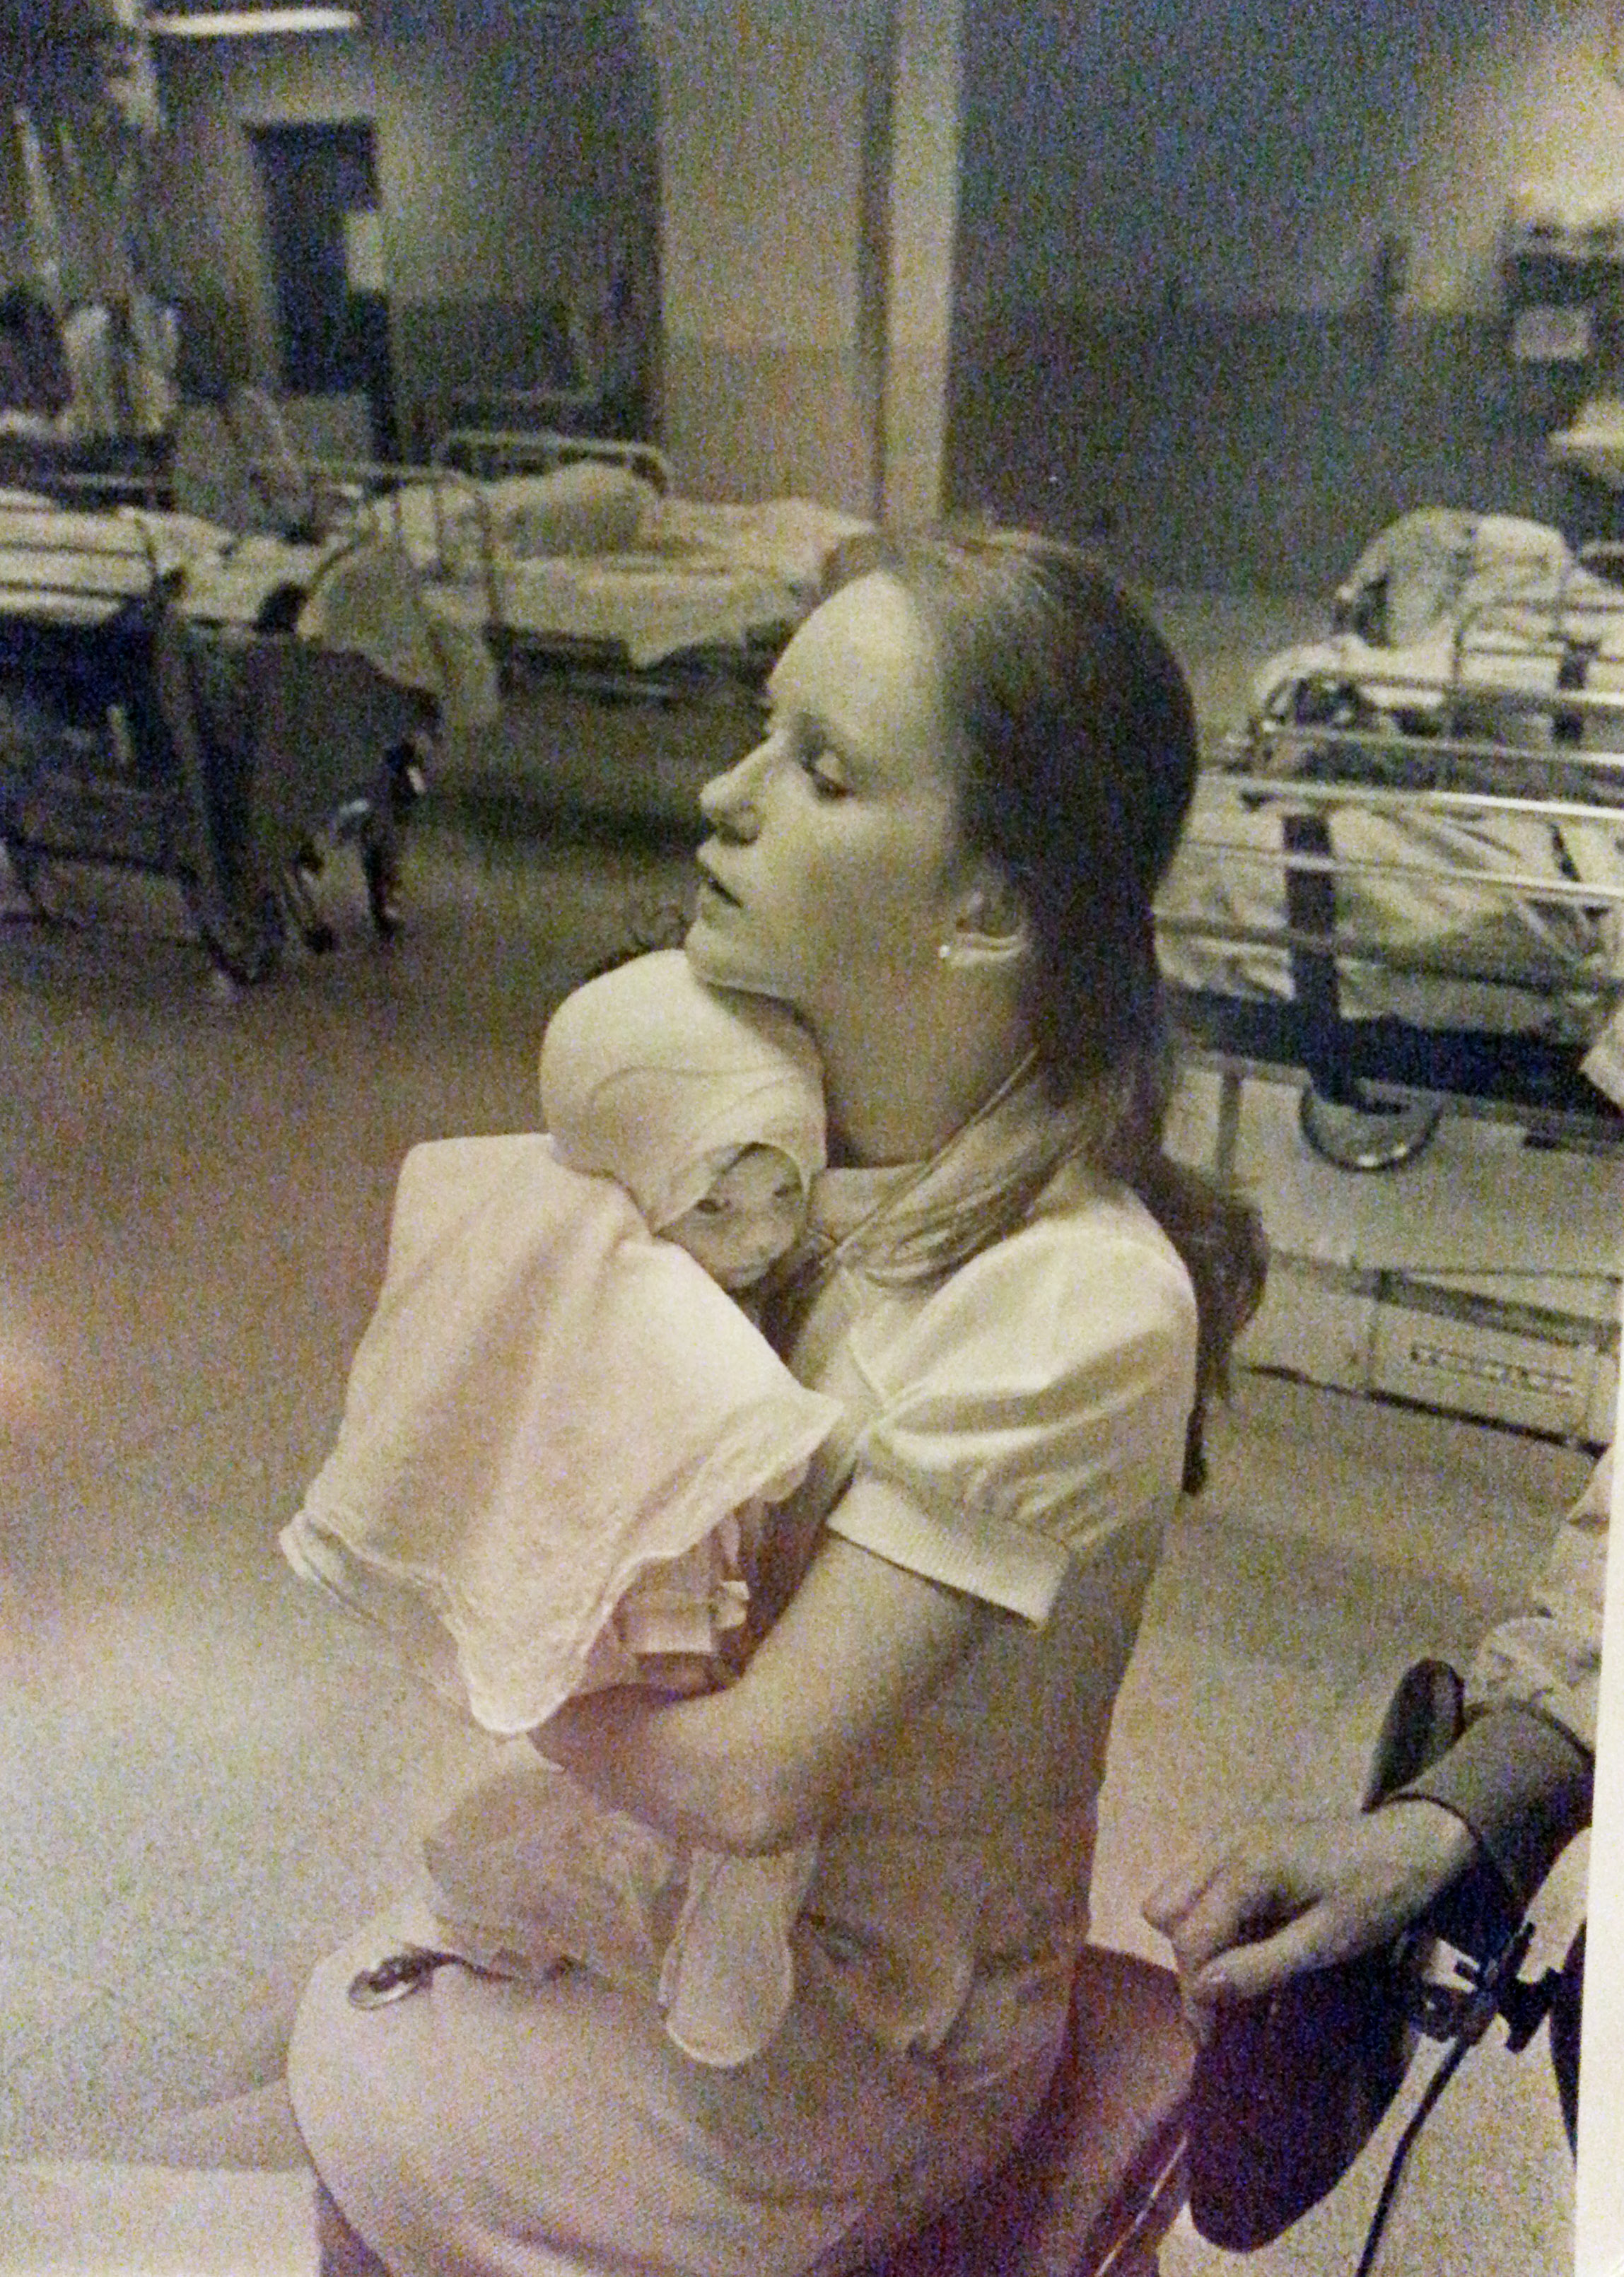 In this 1977 photo provided by Albany Medical Center, nurse Susan Berger cuddles infant Amanda Scarpinati, who had been severely burned by a steam vaporizer at home, in the pediatric unit at Albany Medical Center in Albany, N.Y.